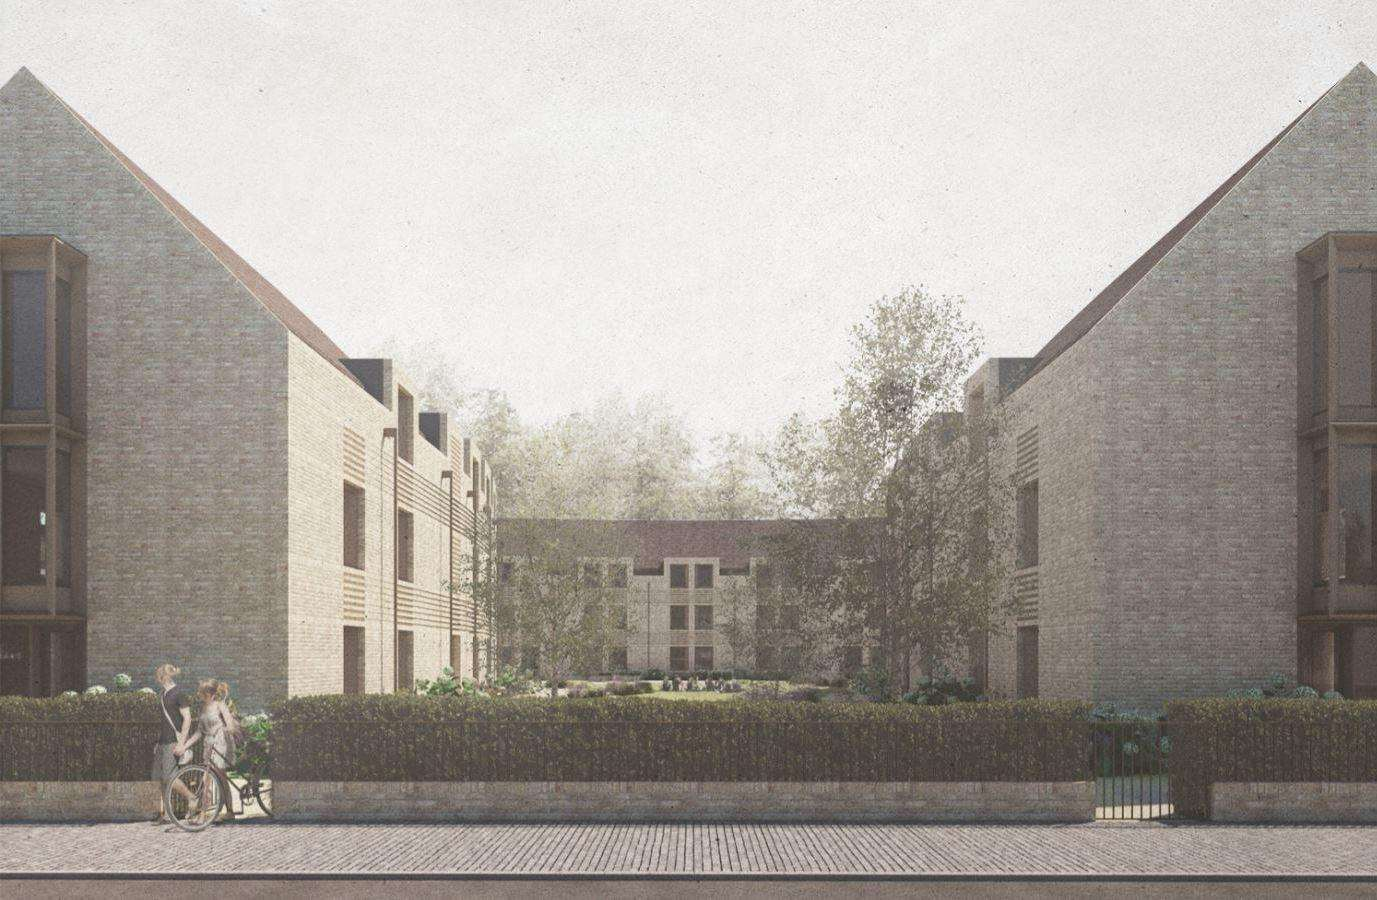 King's College student accomodation plan for Barton Road.(6164354)